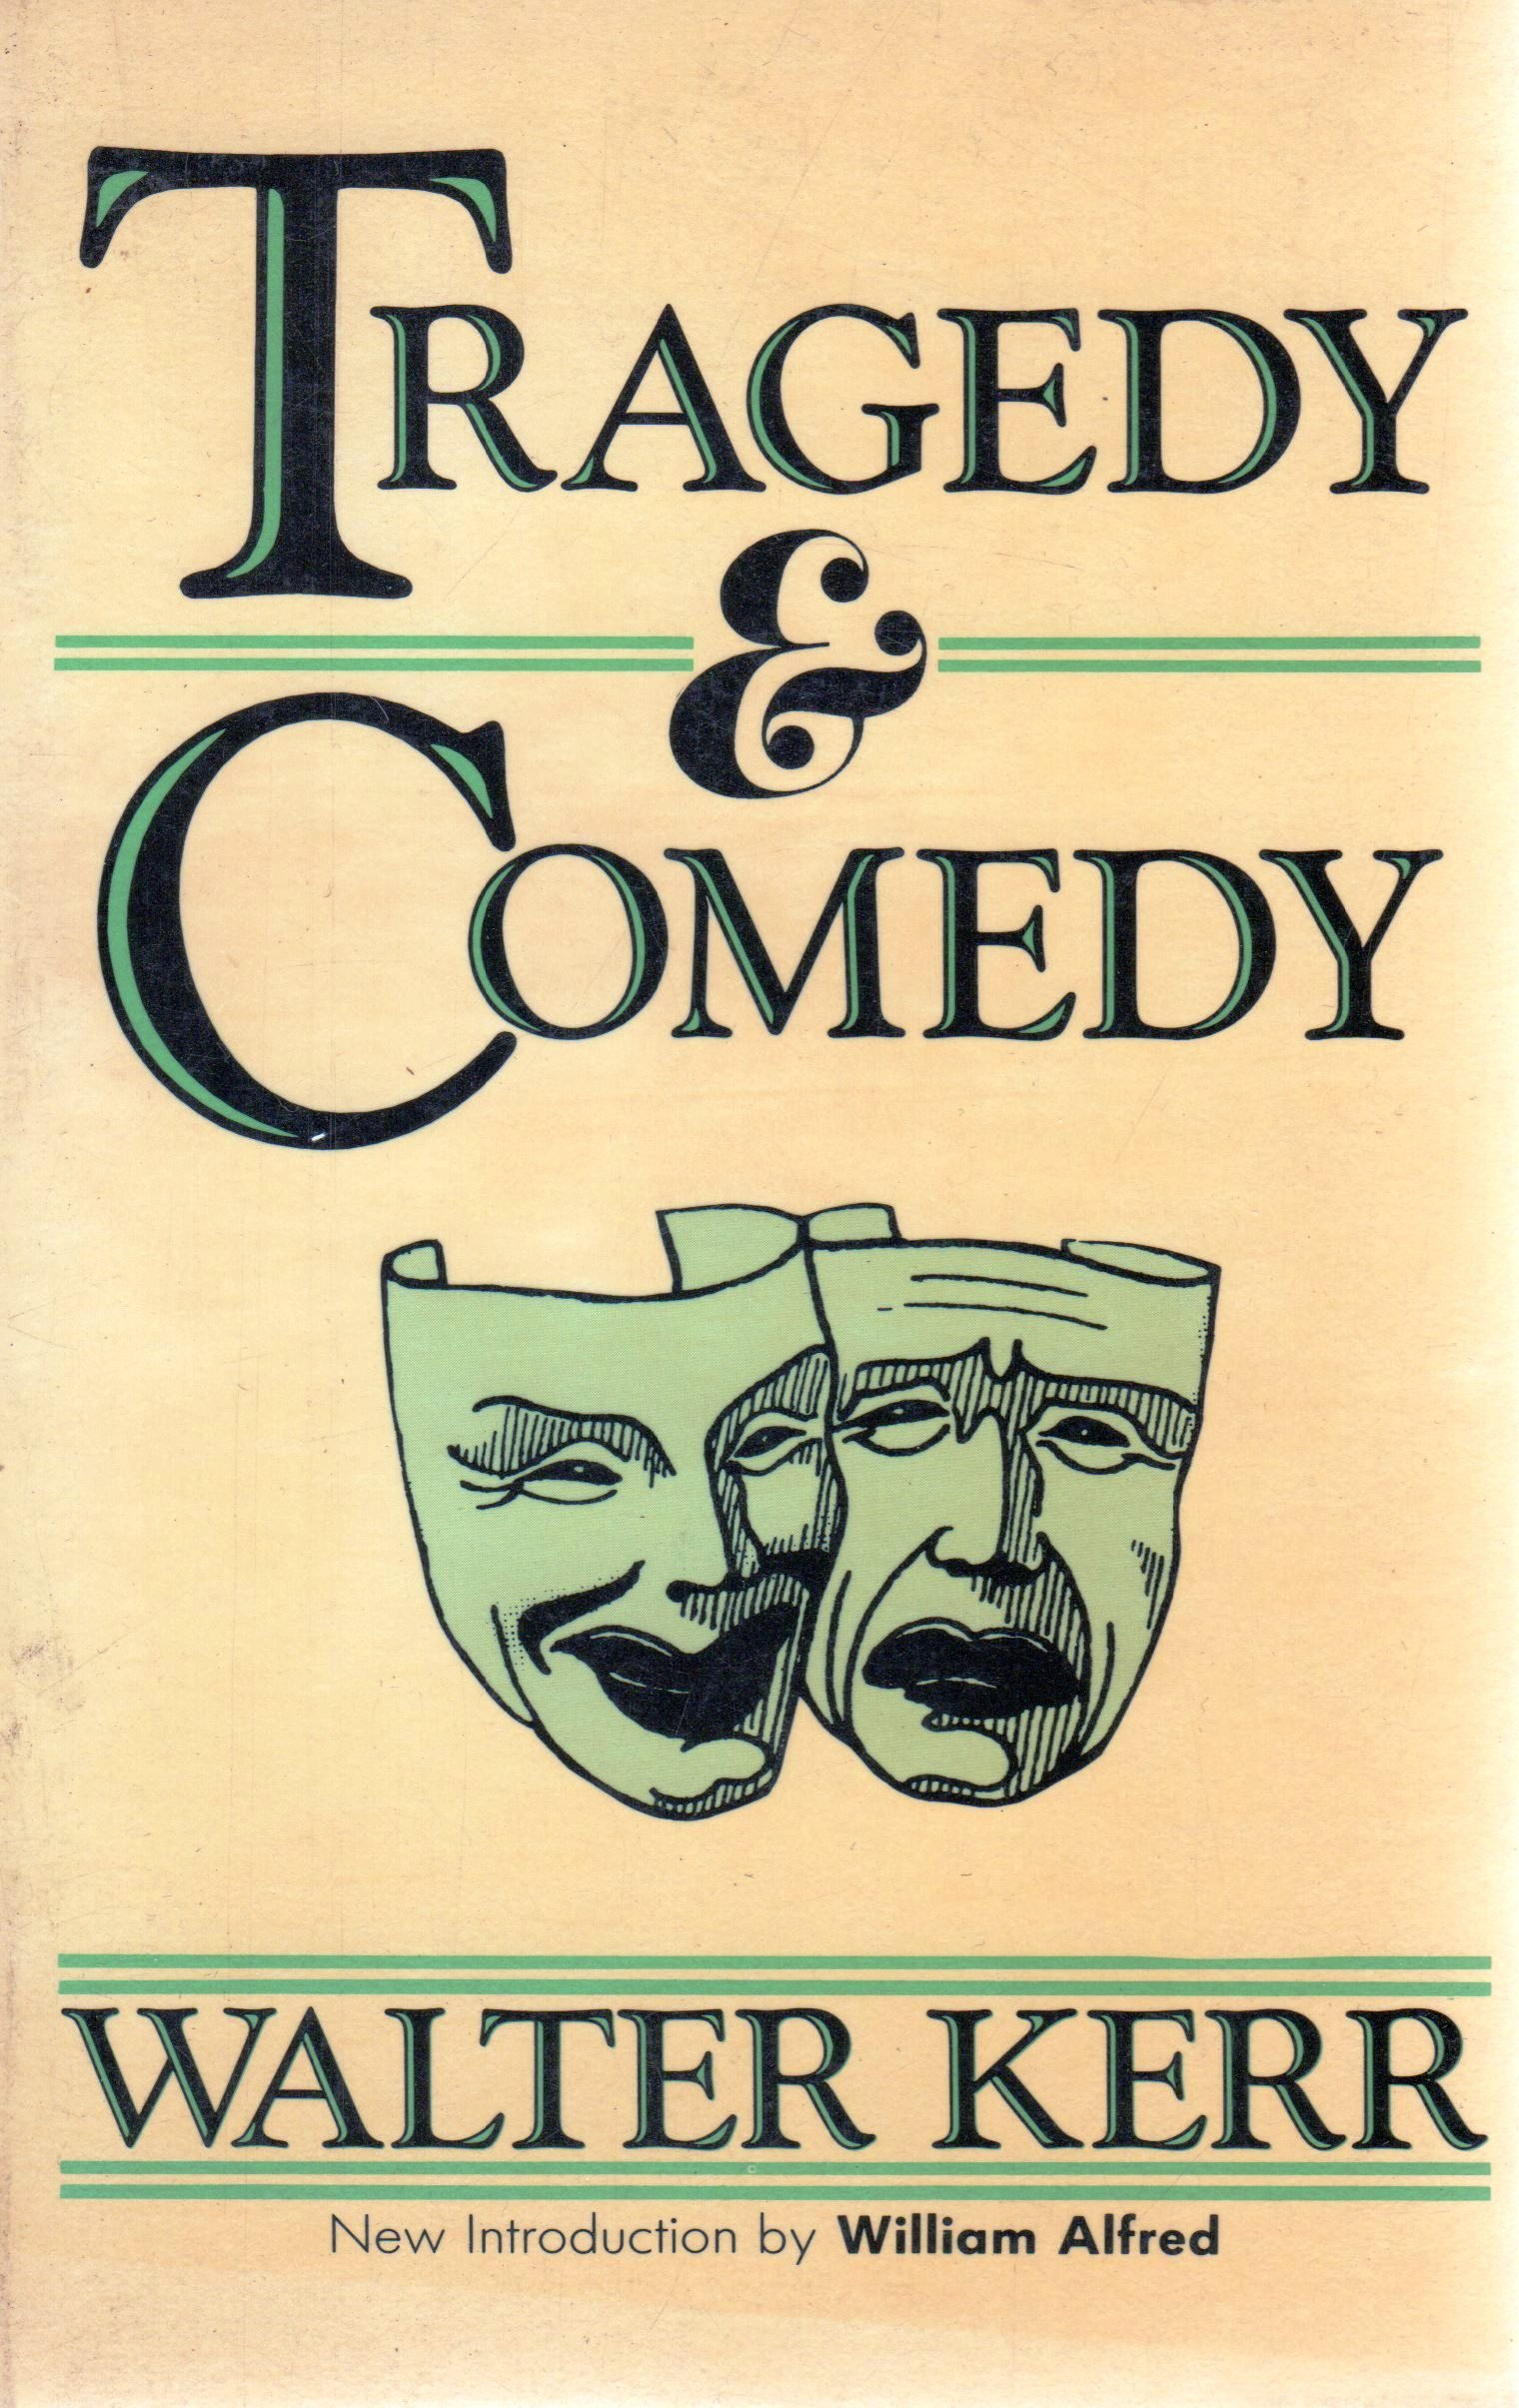 Image result for tragedy and comedy walter kerr